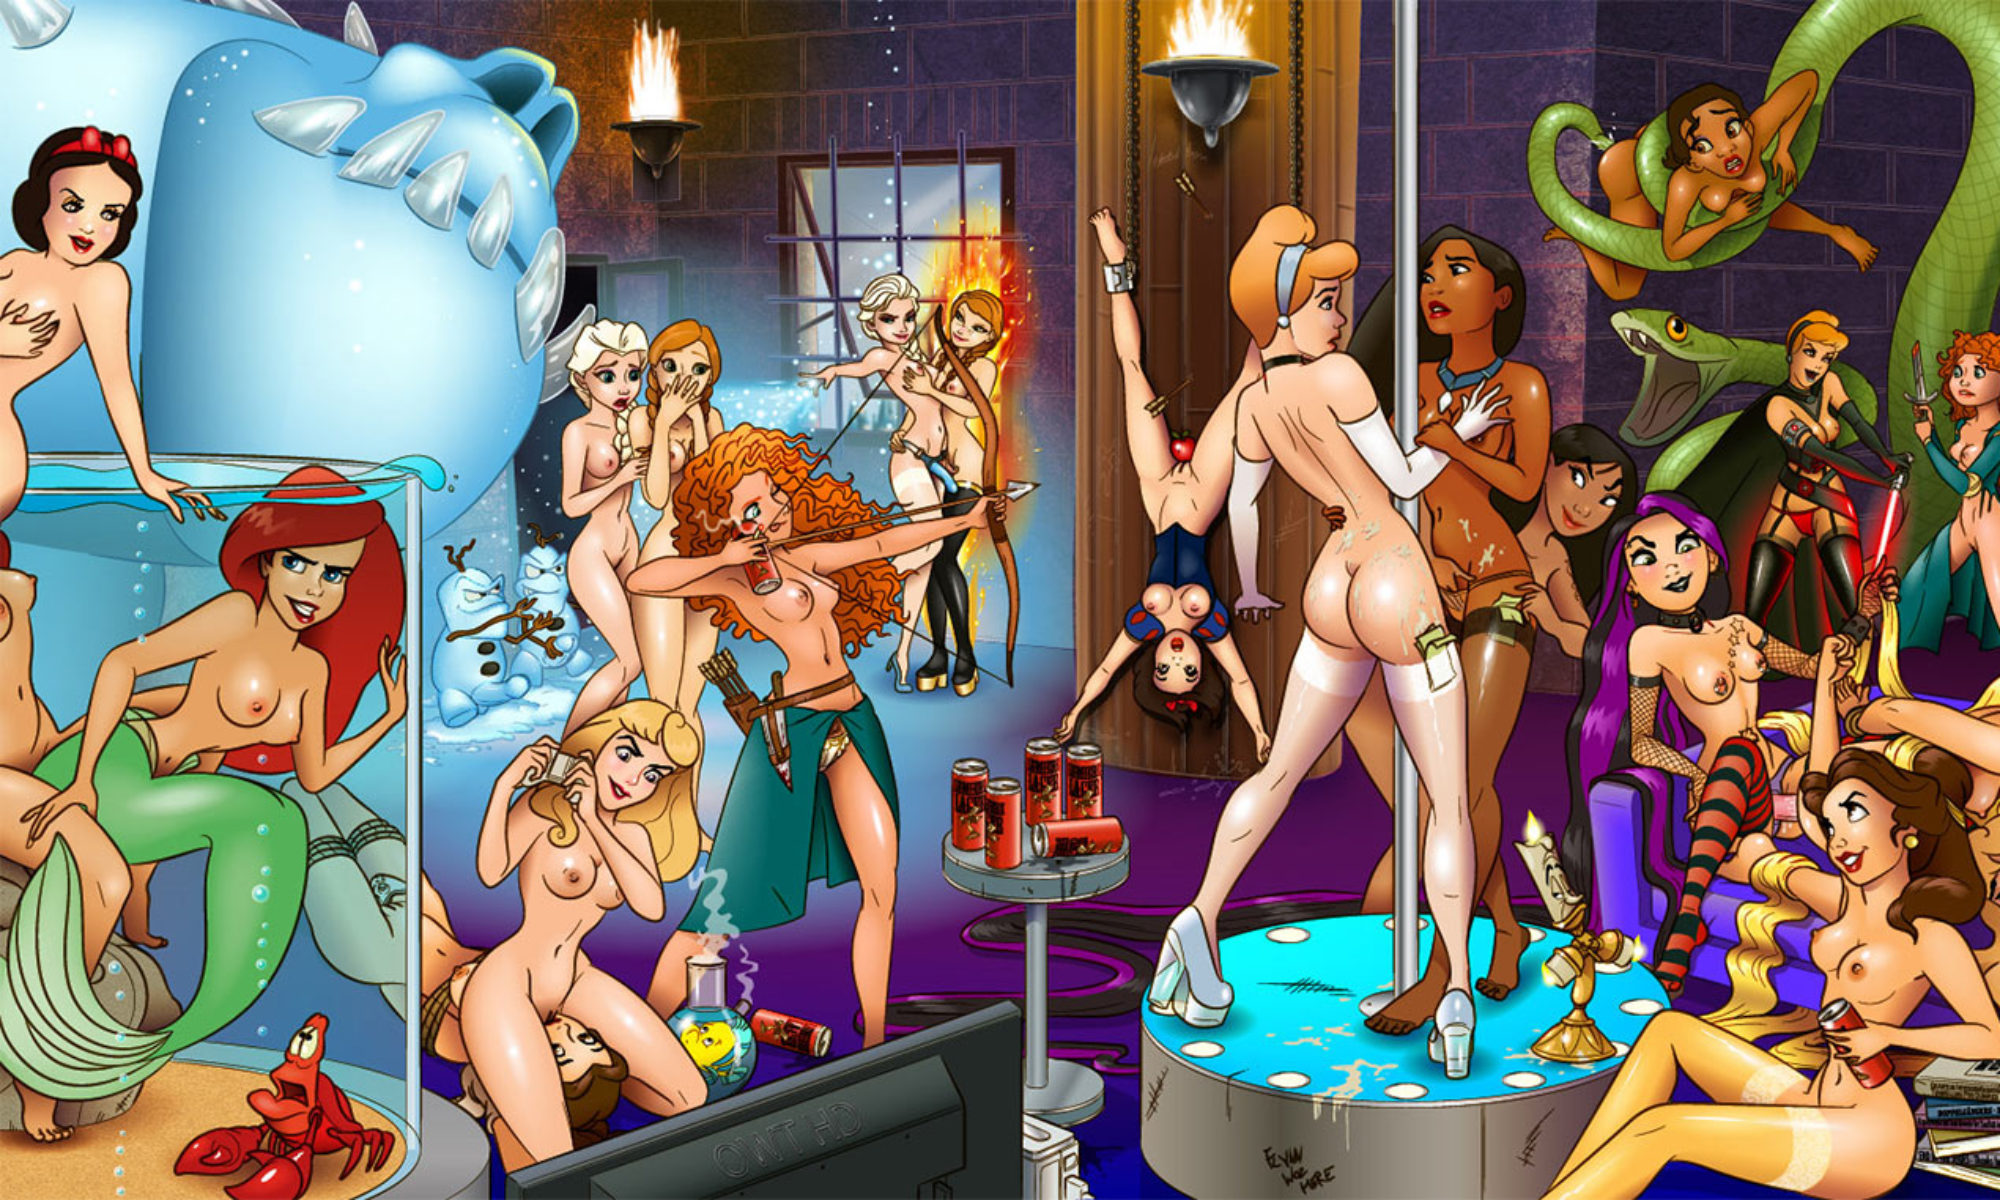 Free nude cartoon movies